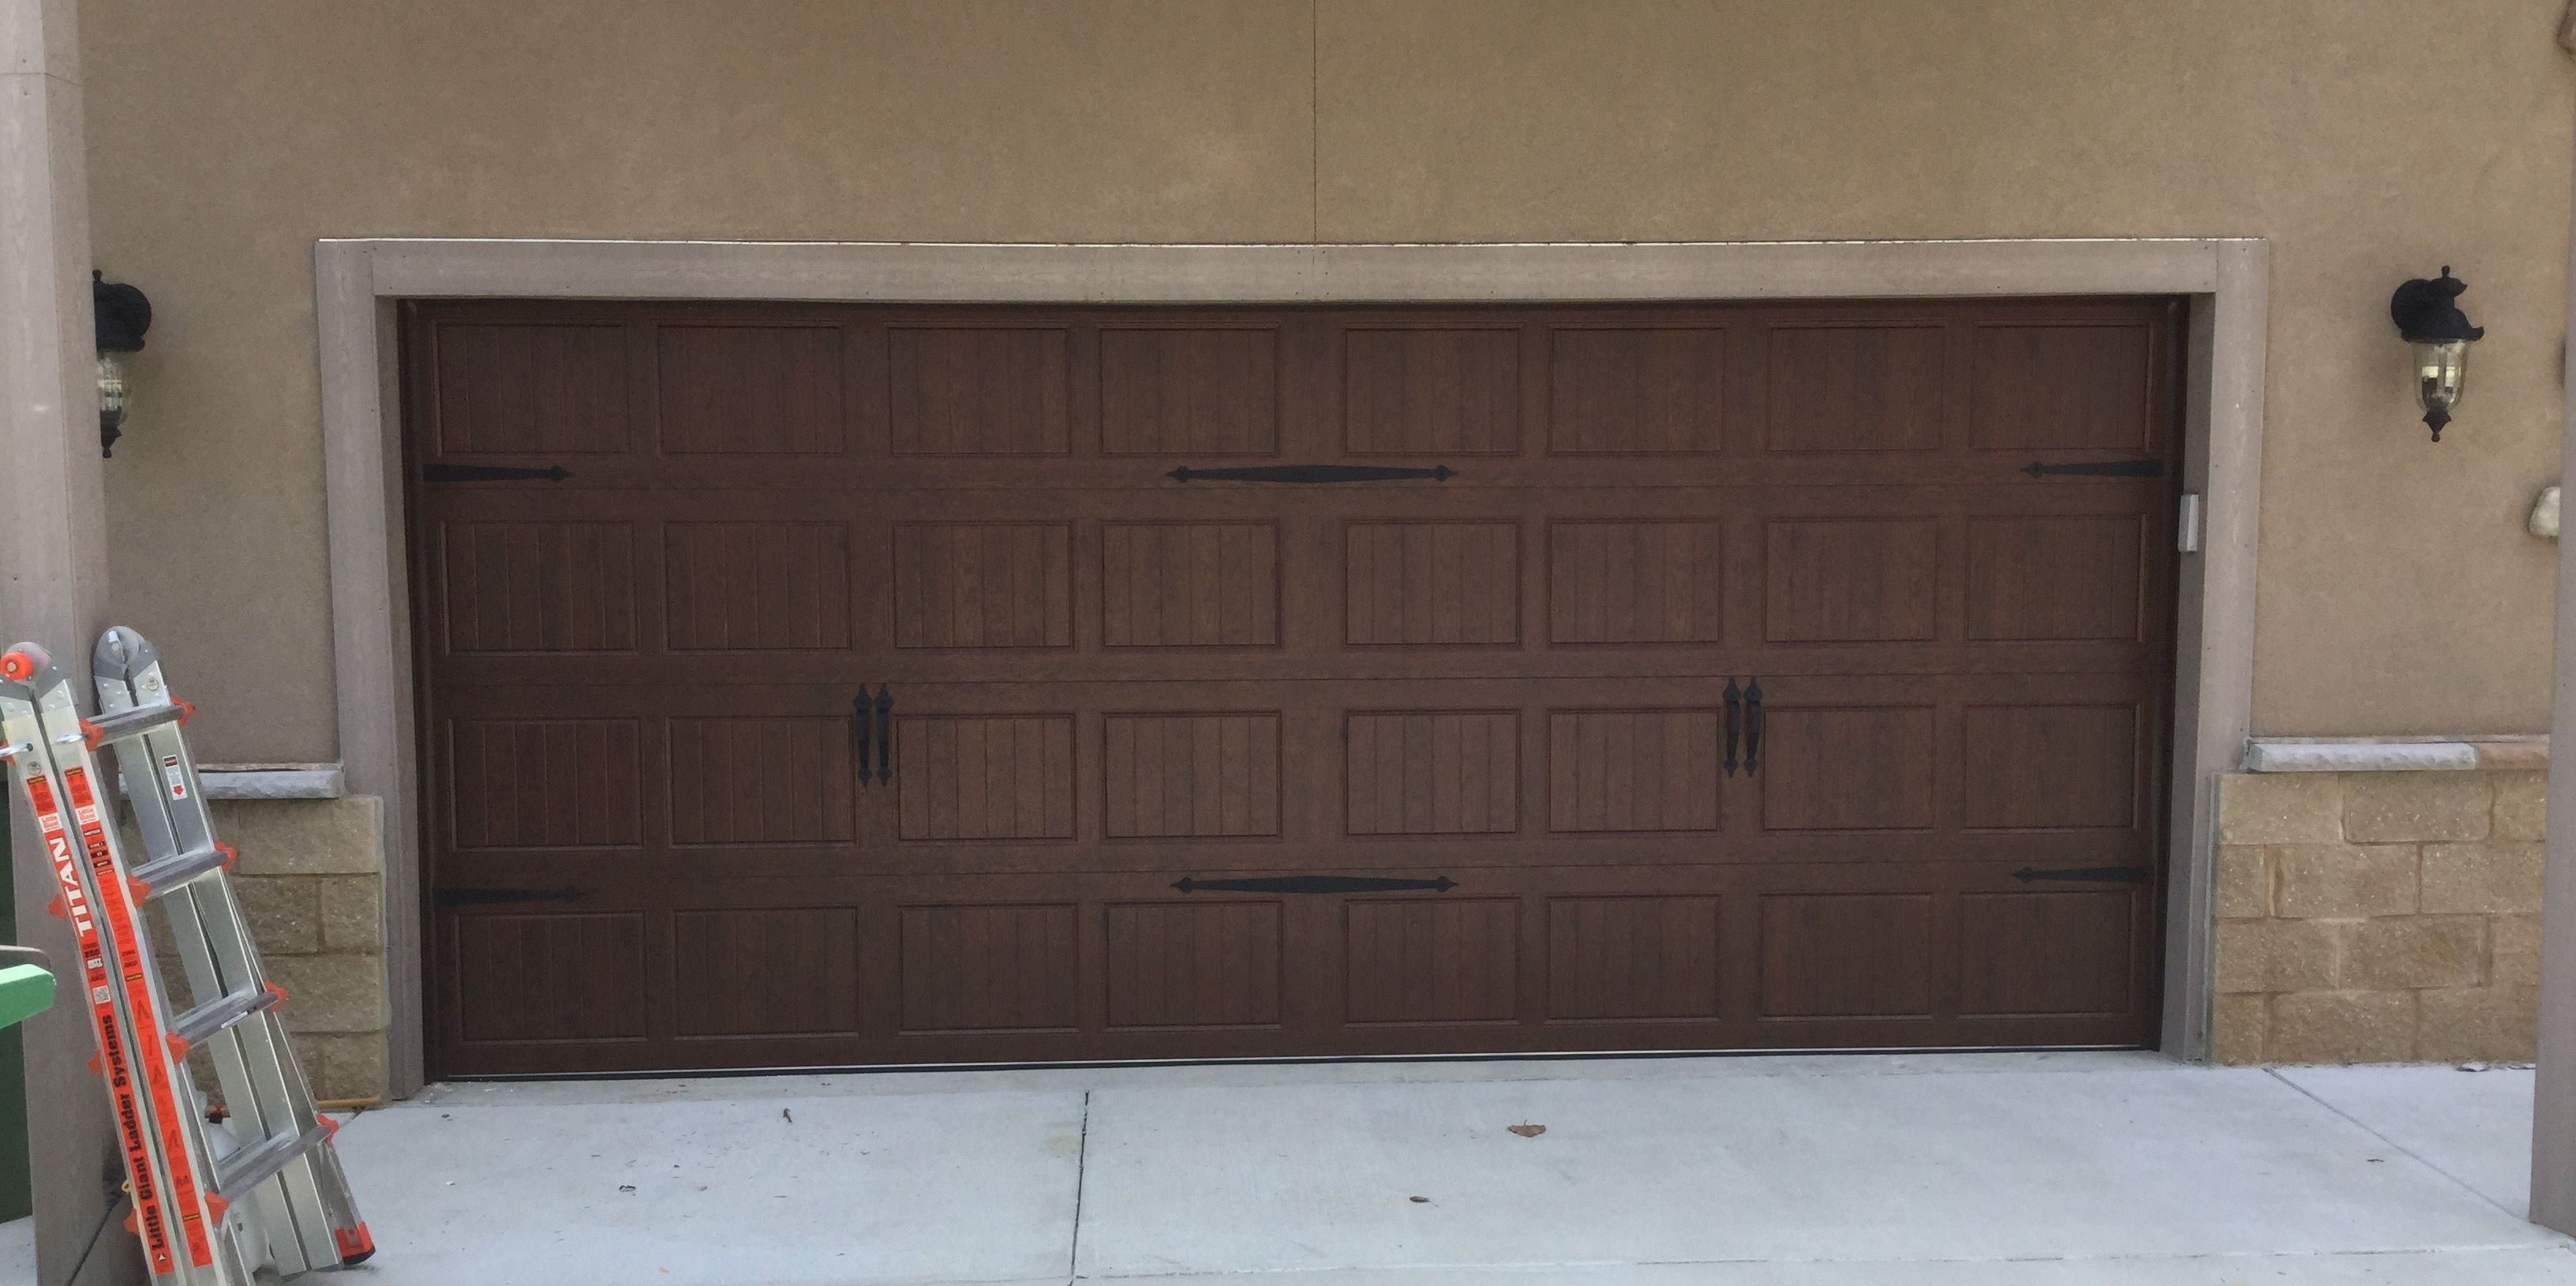 The 3630 Is One Of The Most Popular Residential Garage Doors And Can Be A Great Choice For An Ine Residential Garage Doors Residential Garage Door Inspiration